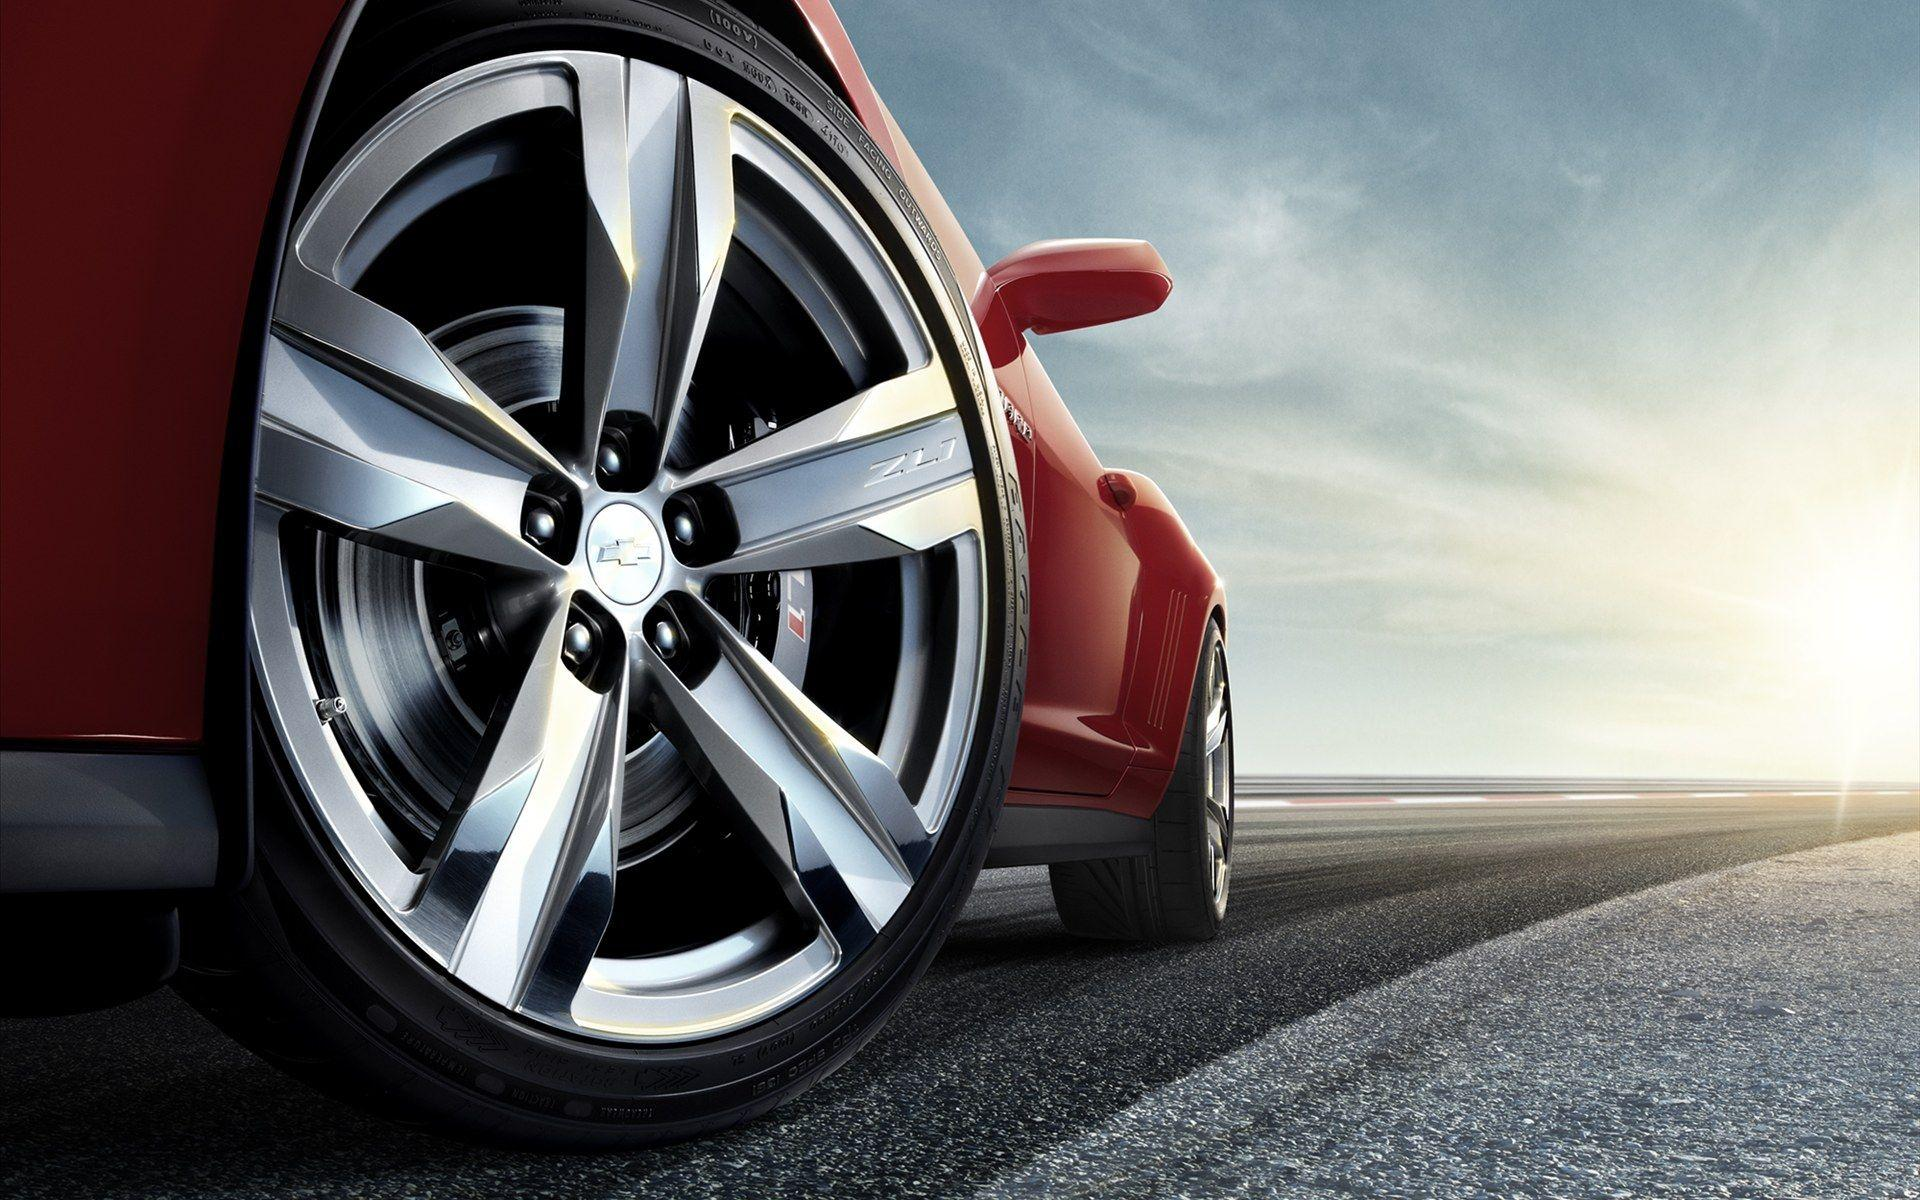 Alloy Wallpapers Wallpaper Cave Alloy wheels wallpapers